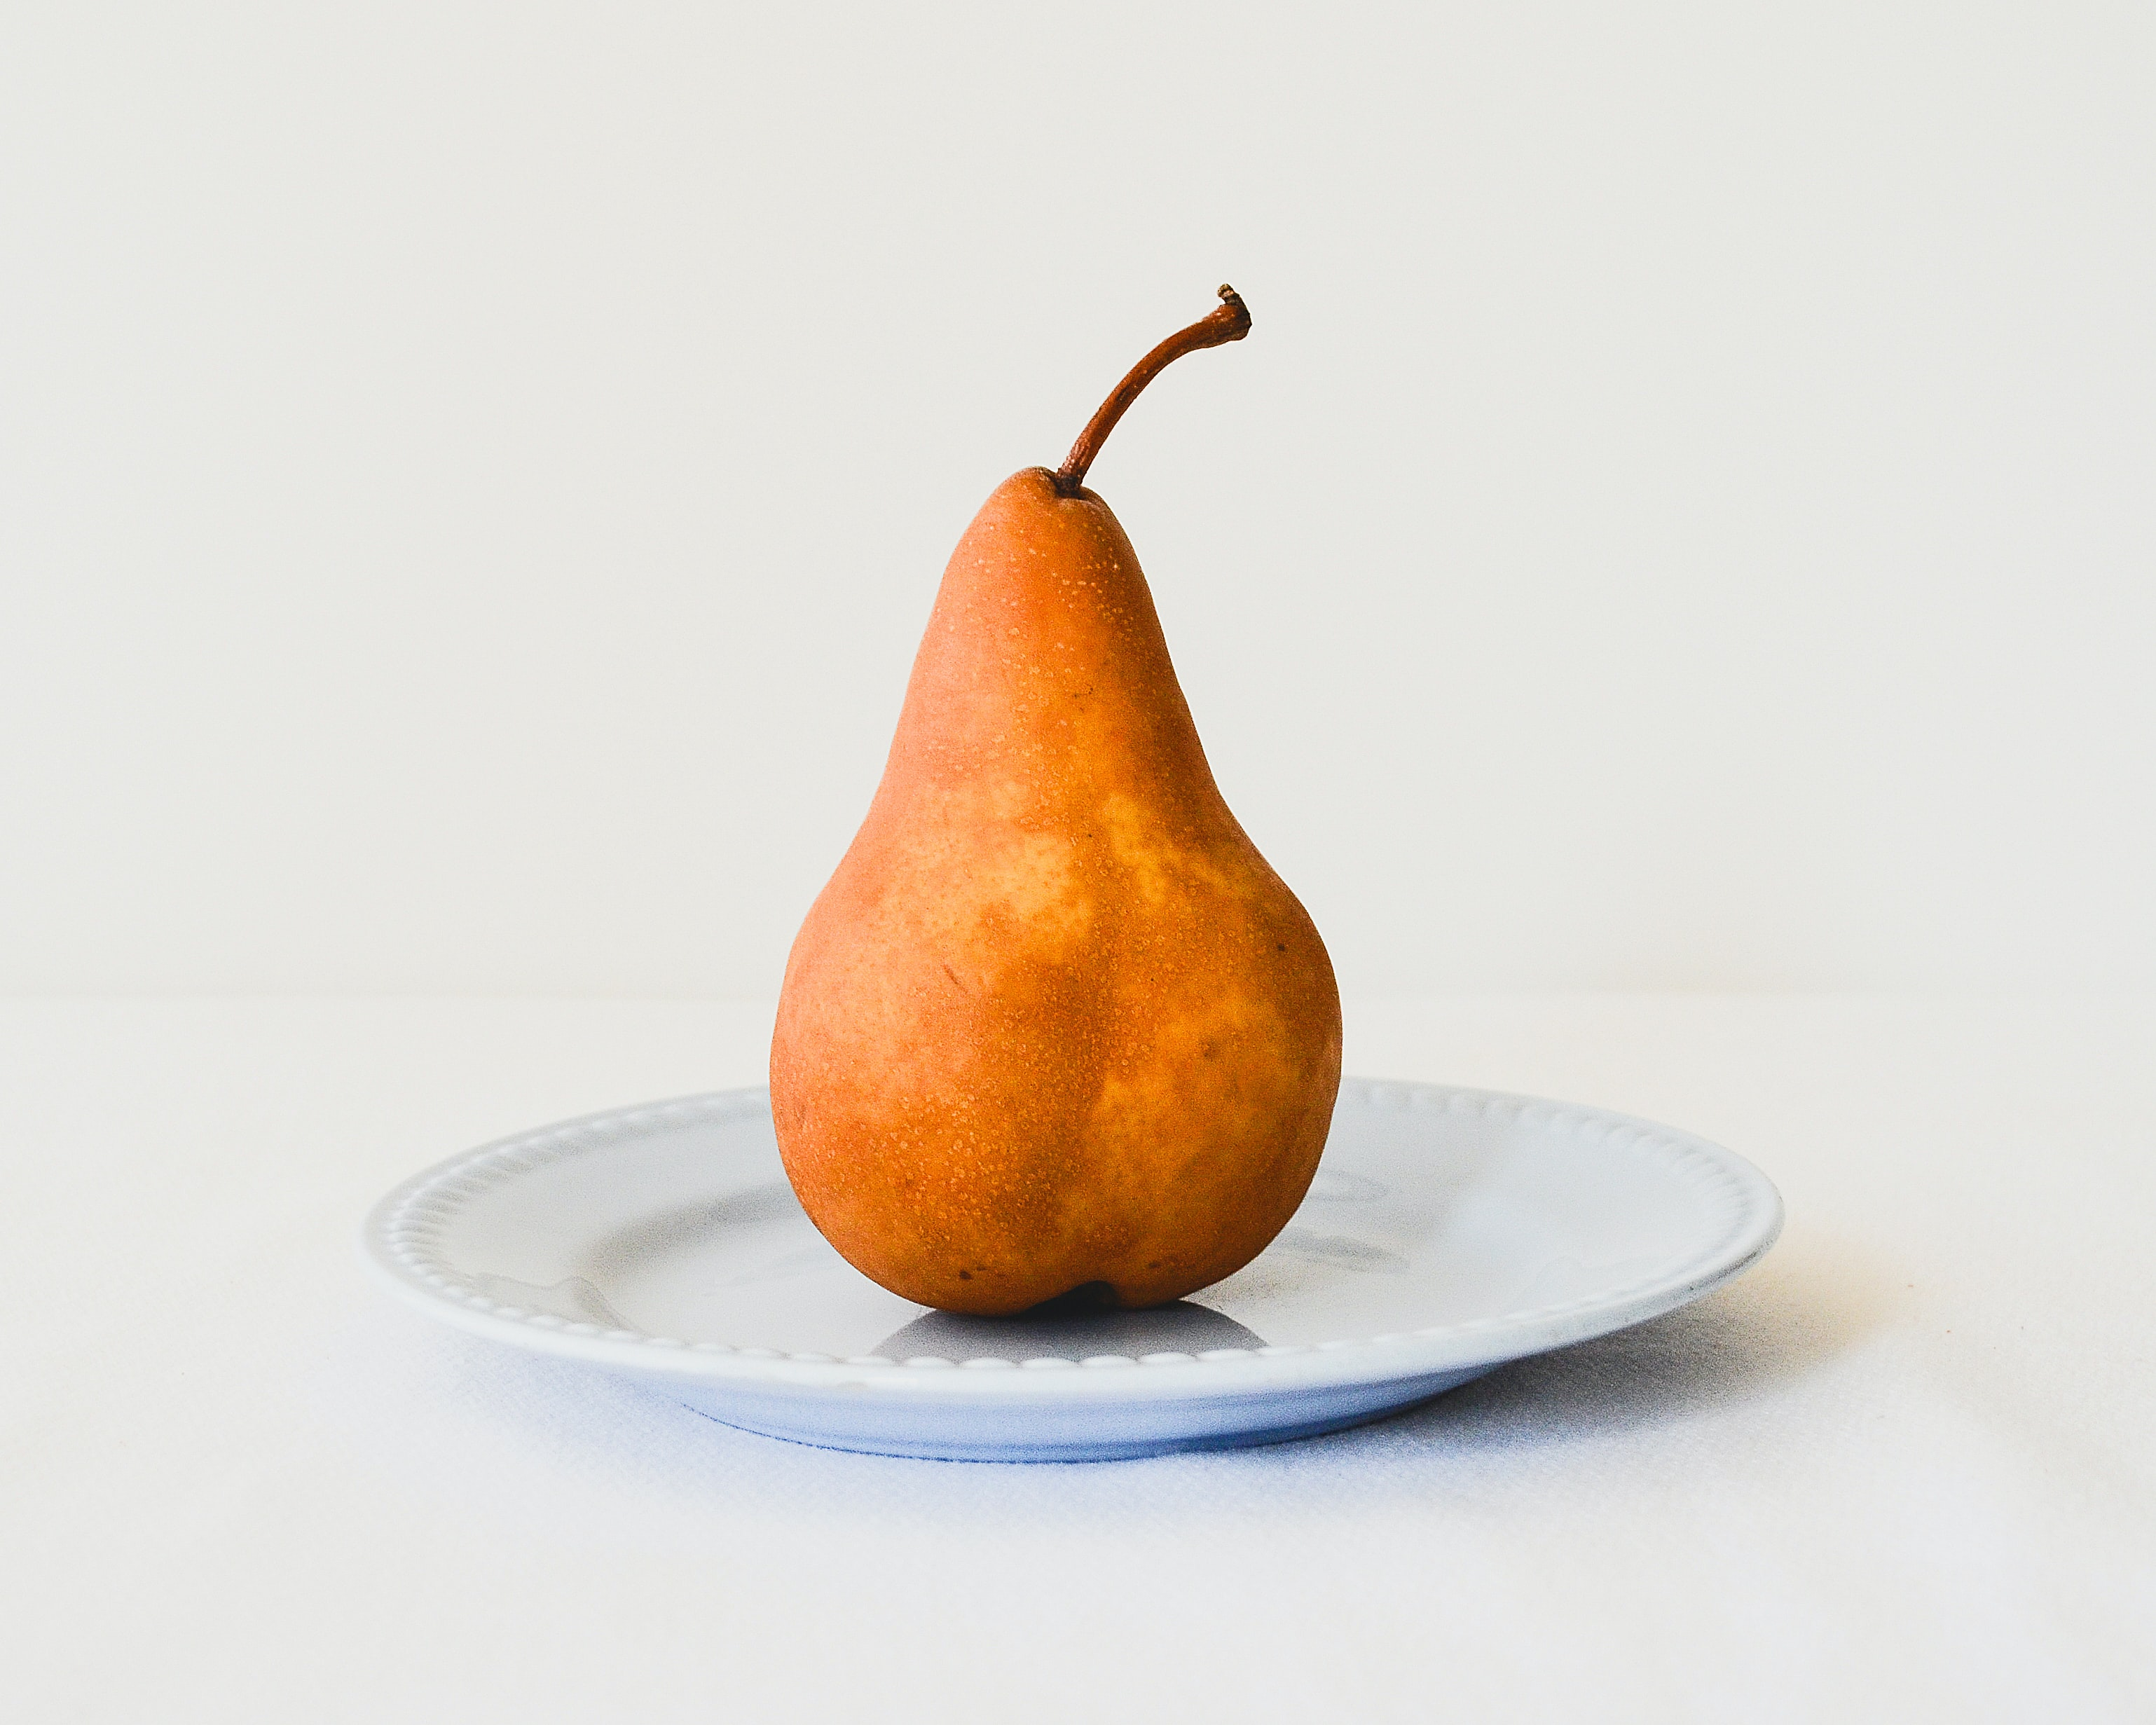 orange pear on white ceramic plate